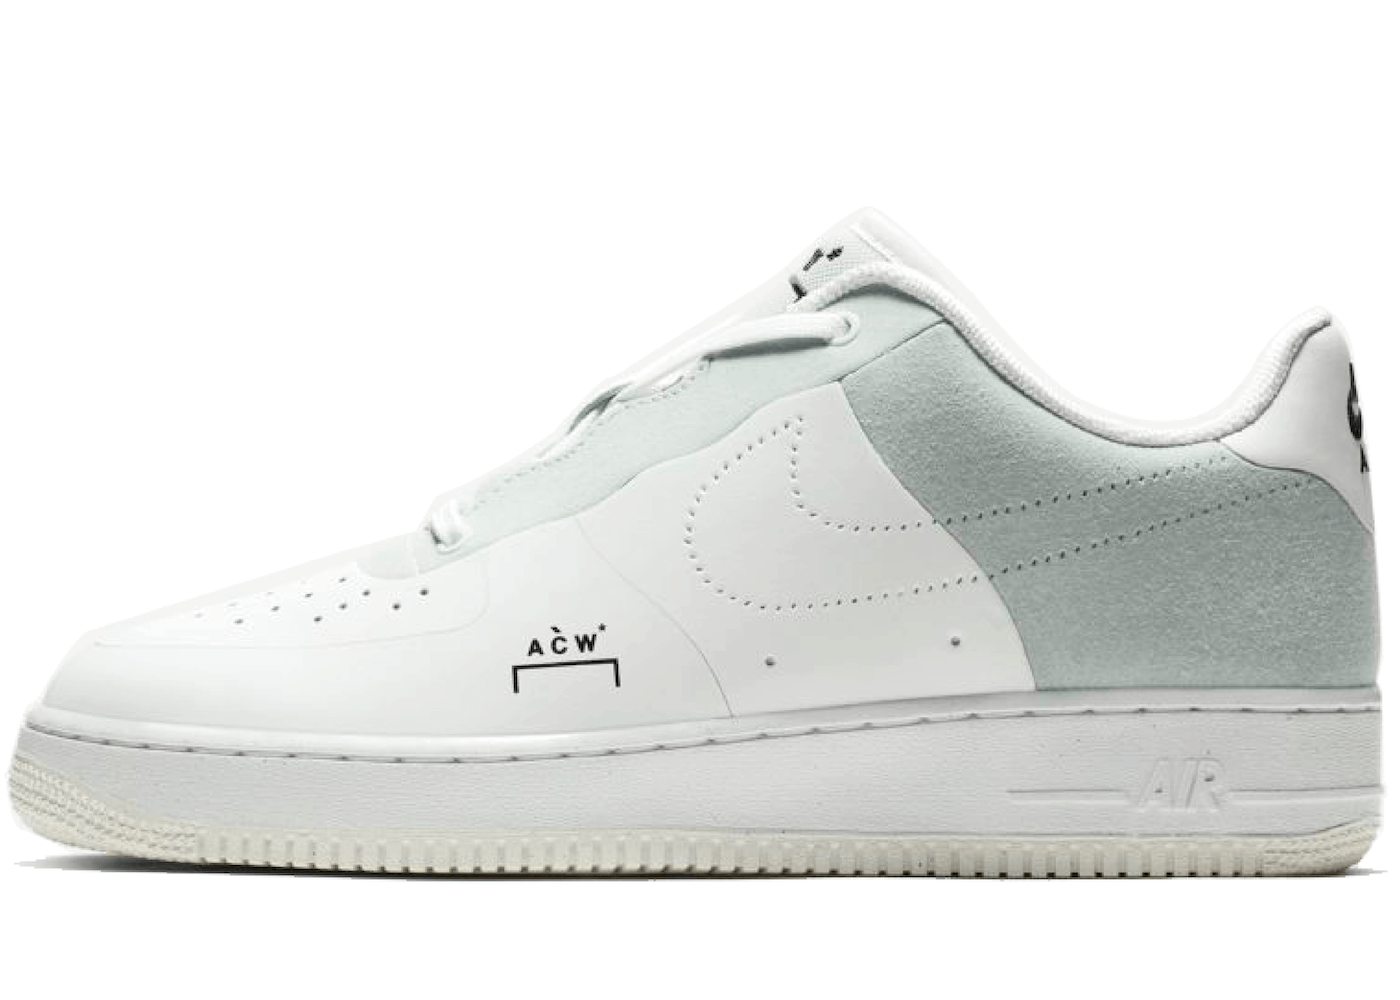 Nike Air Force 1 Low A Cold Wall Whiteの写真